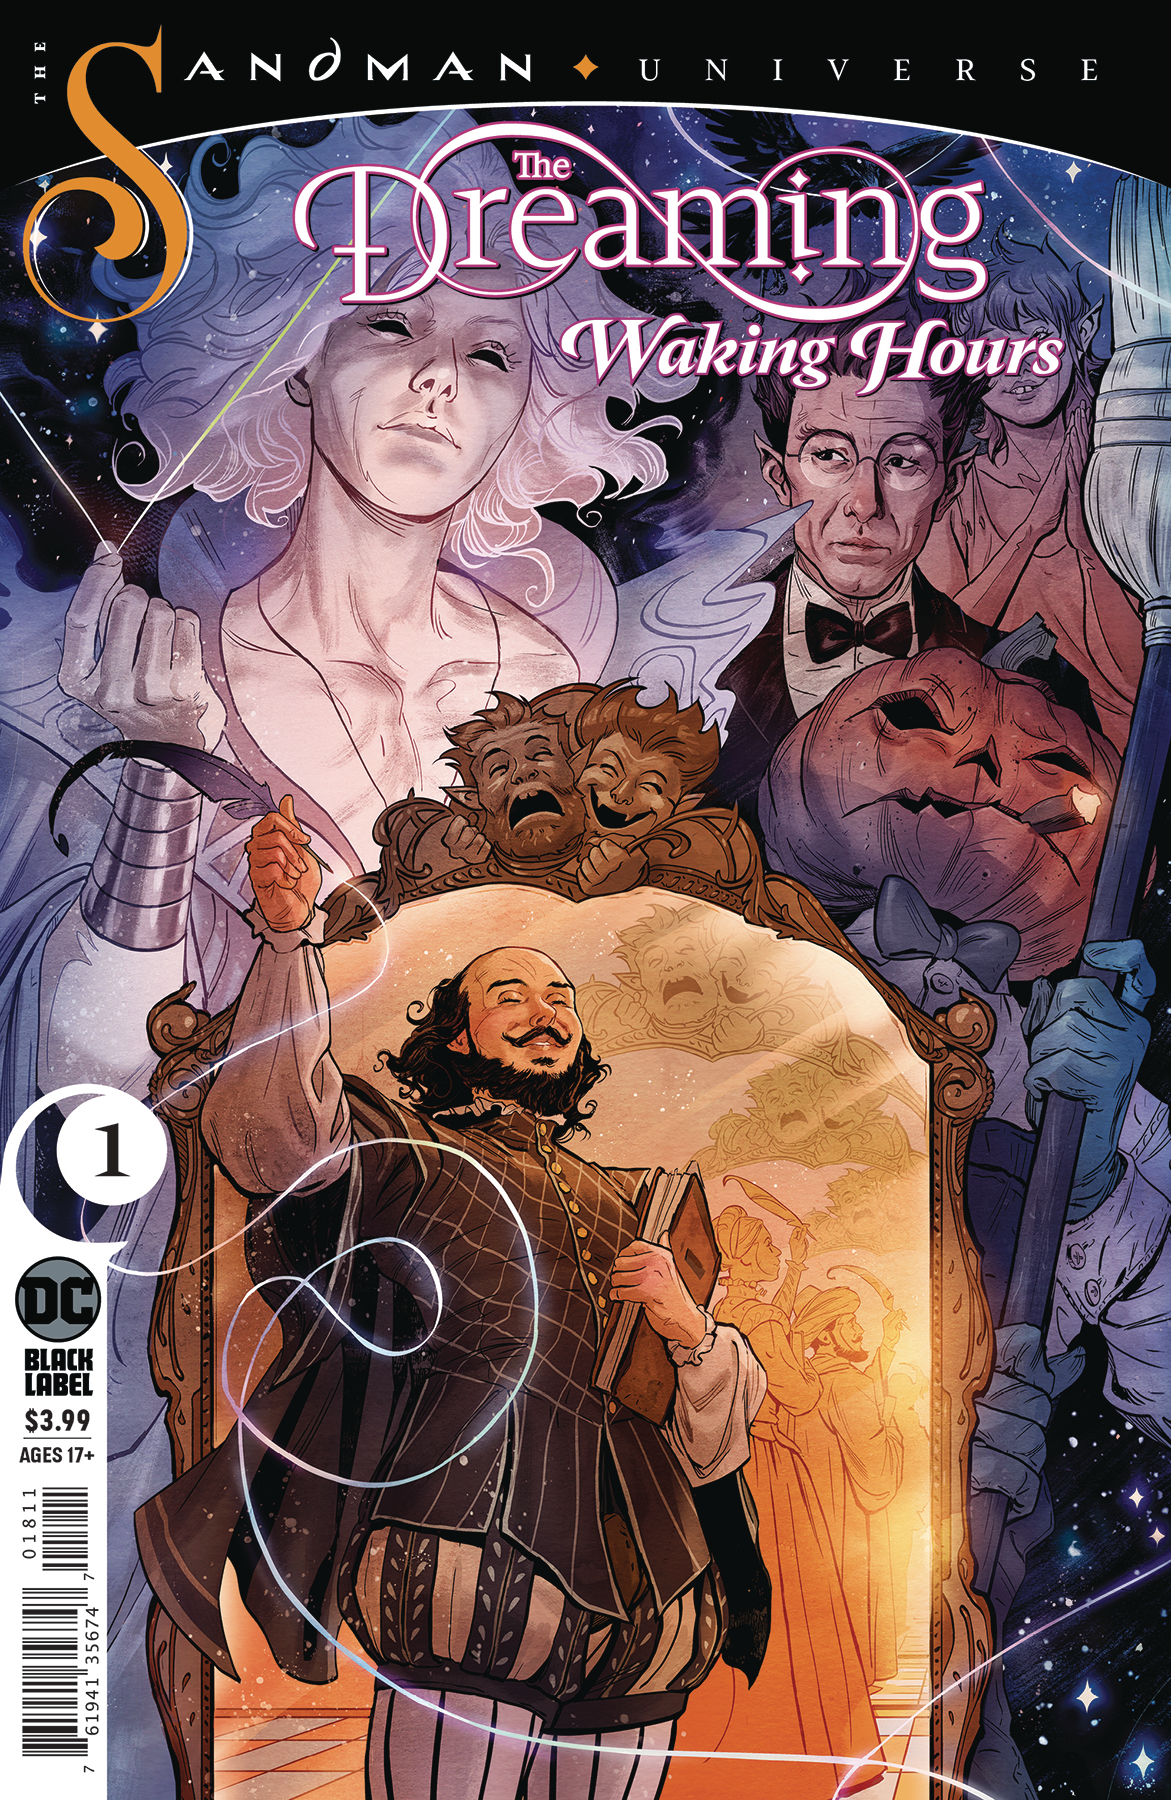 DREAMING WAKING HOURS #1 (RES) (MR)